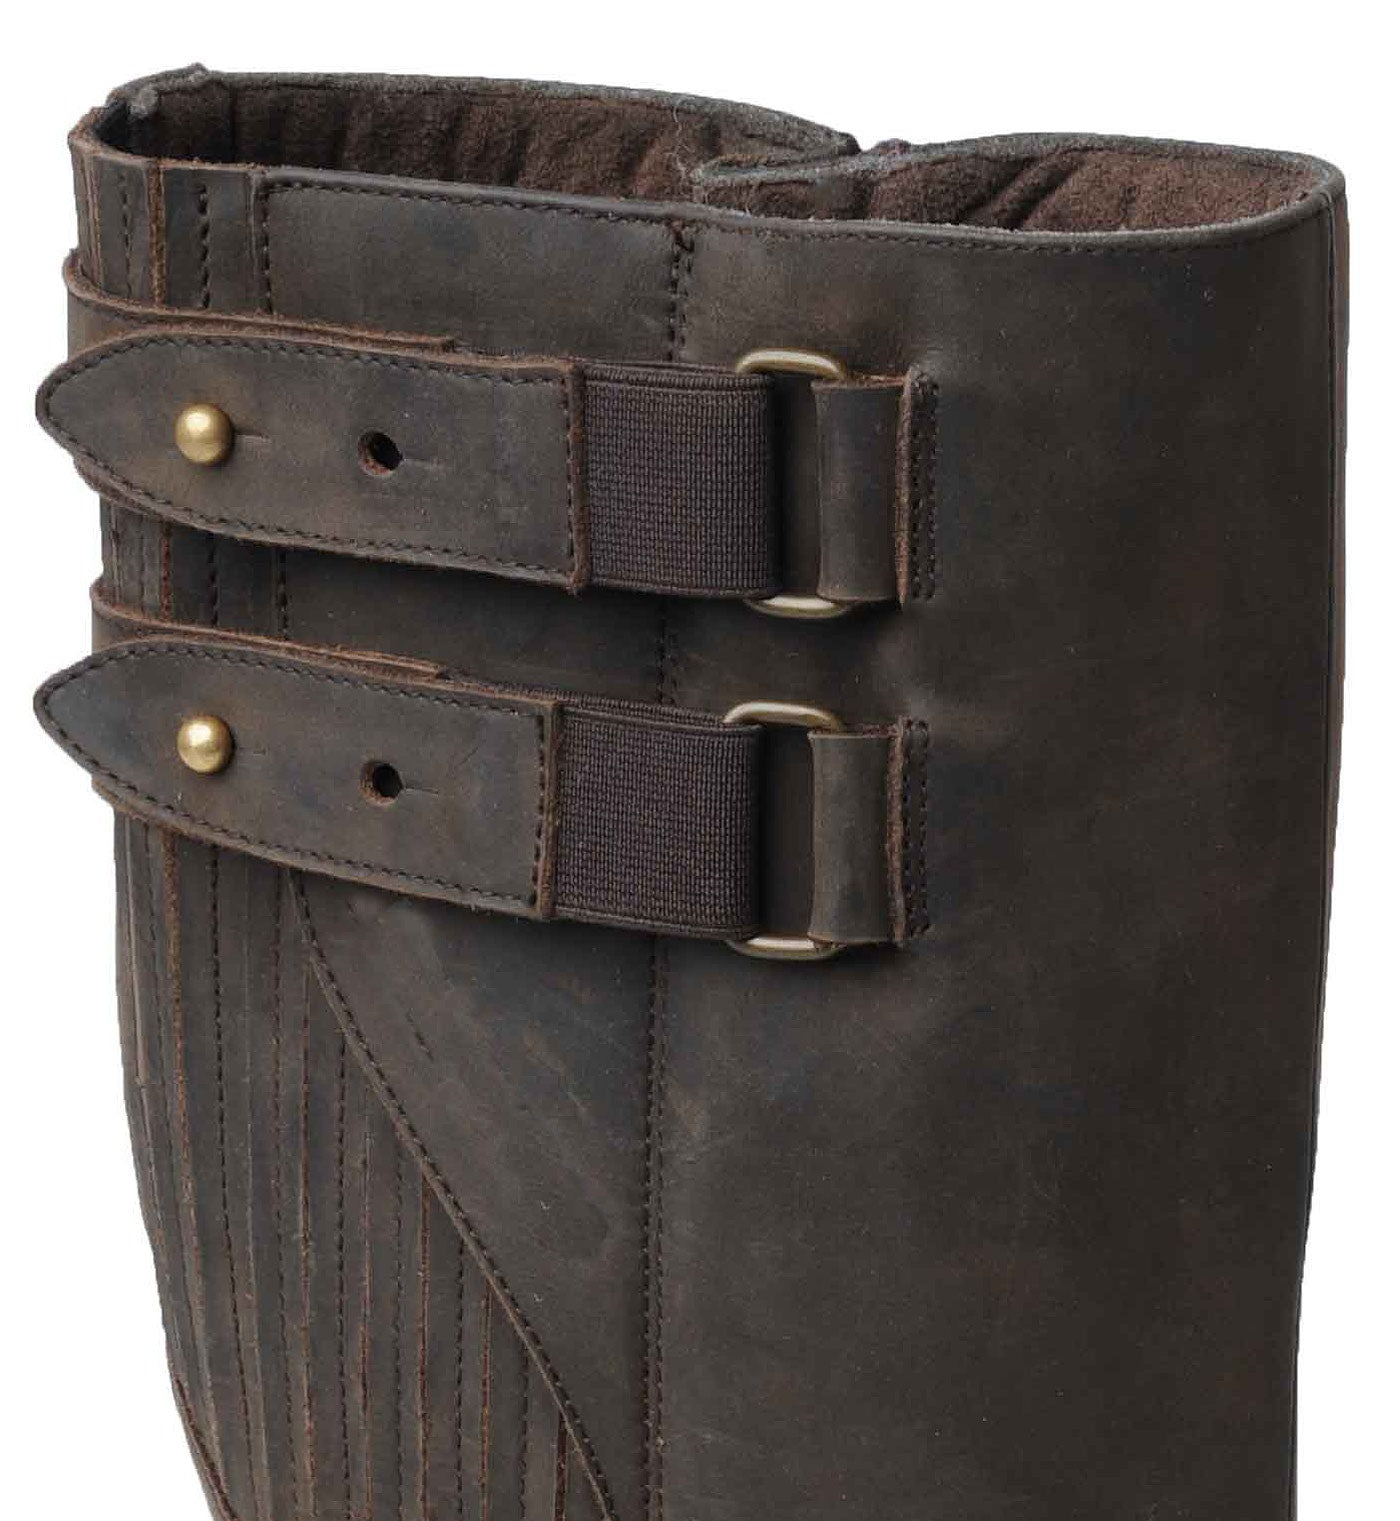 buckle detail Catesby Moreton Men's Waterproof Leather  Knee High Country Boots